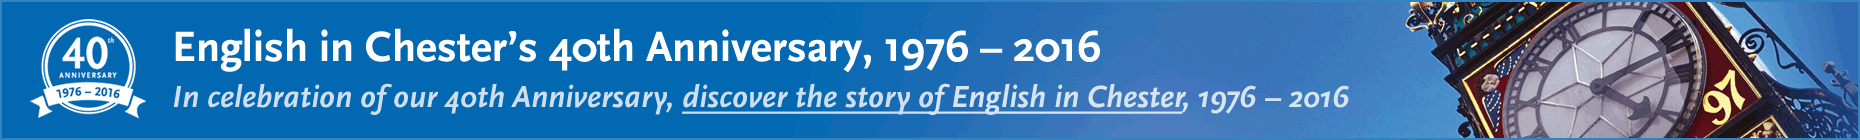 In celebration of our 40th Anniversary, discover the story of English in Chester, 1976 - 2016